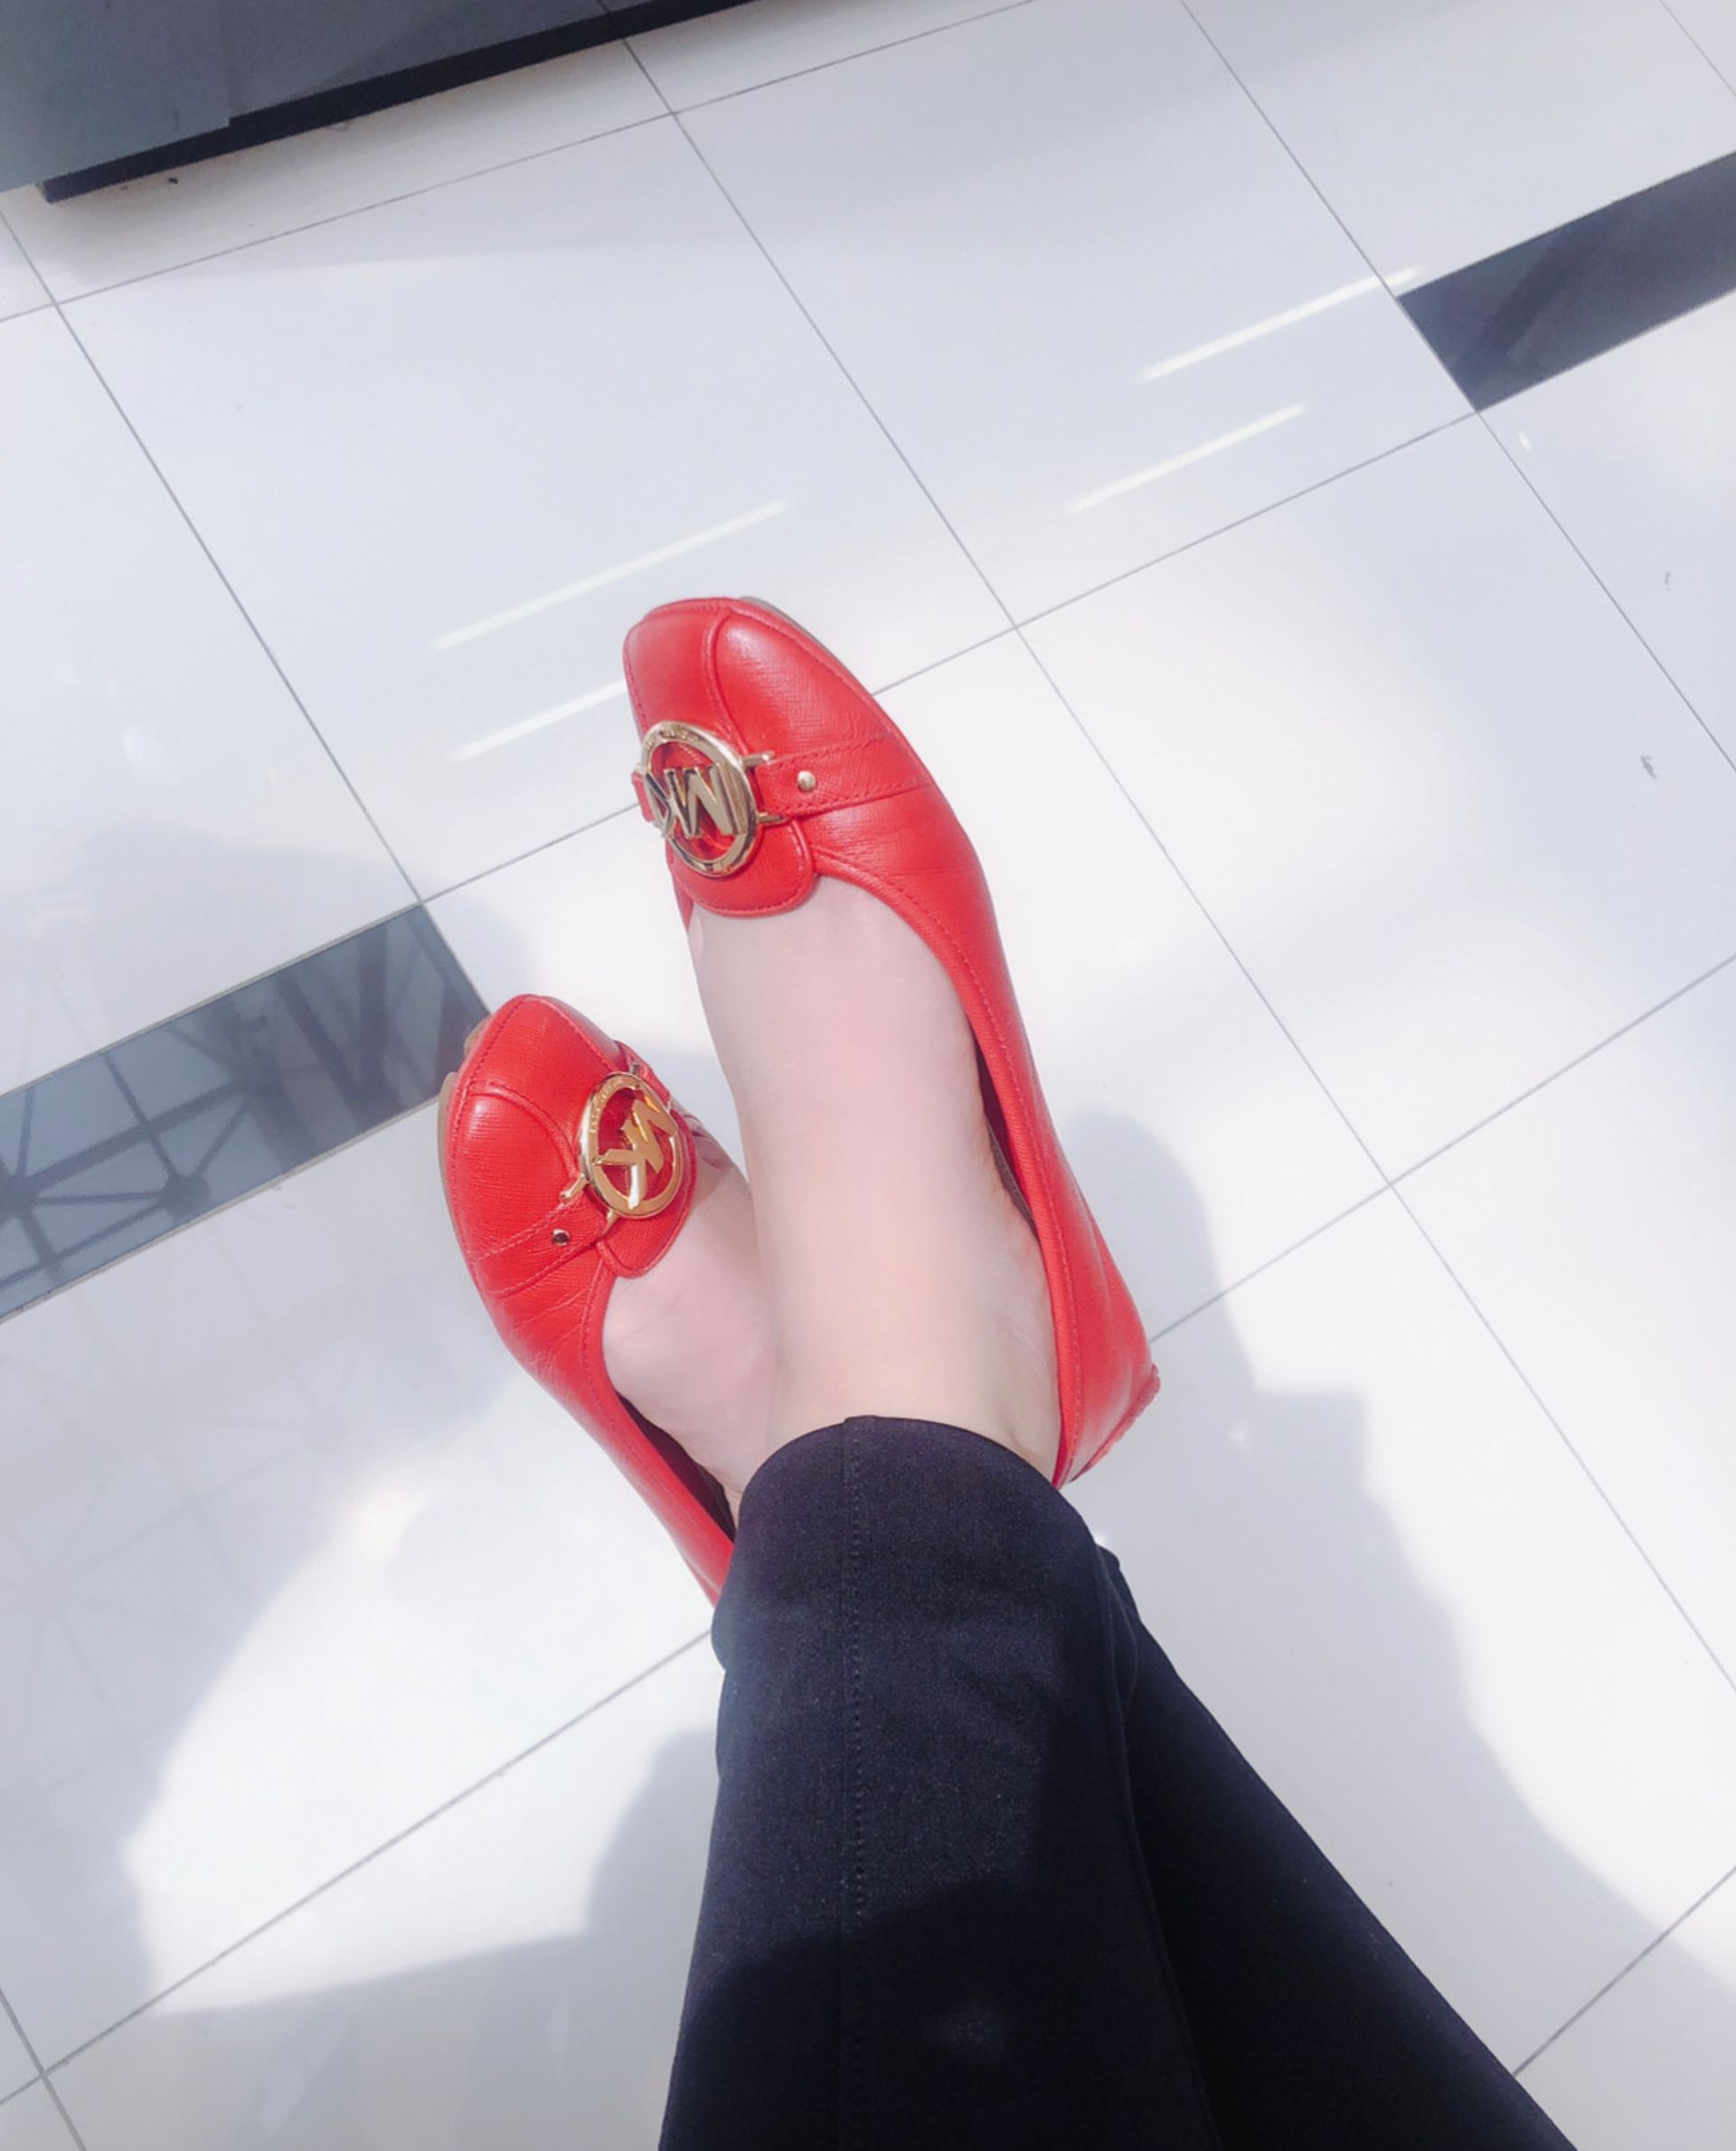 Micheal Kors Red Shoes - Macys Style Crew